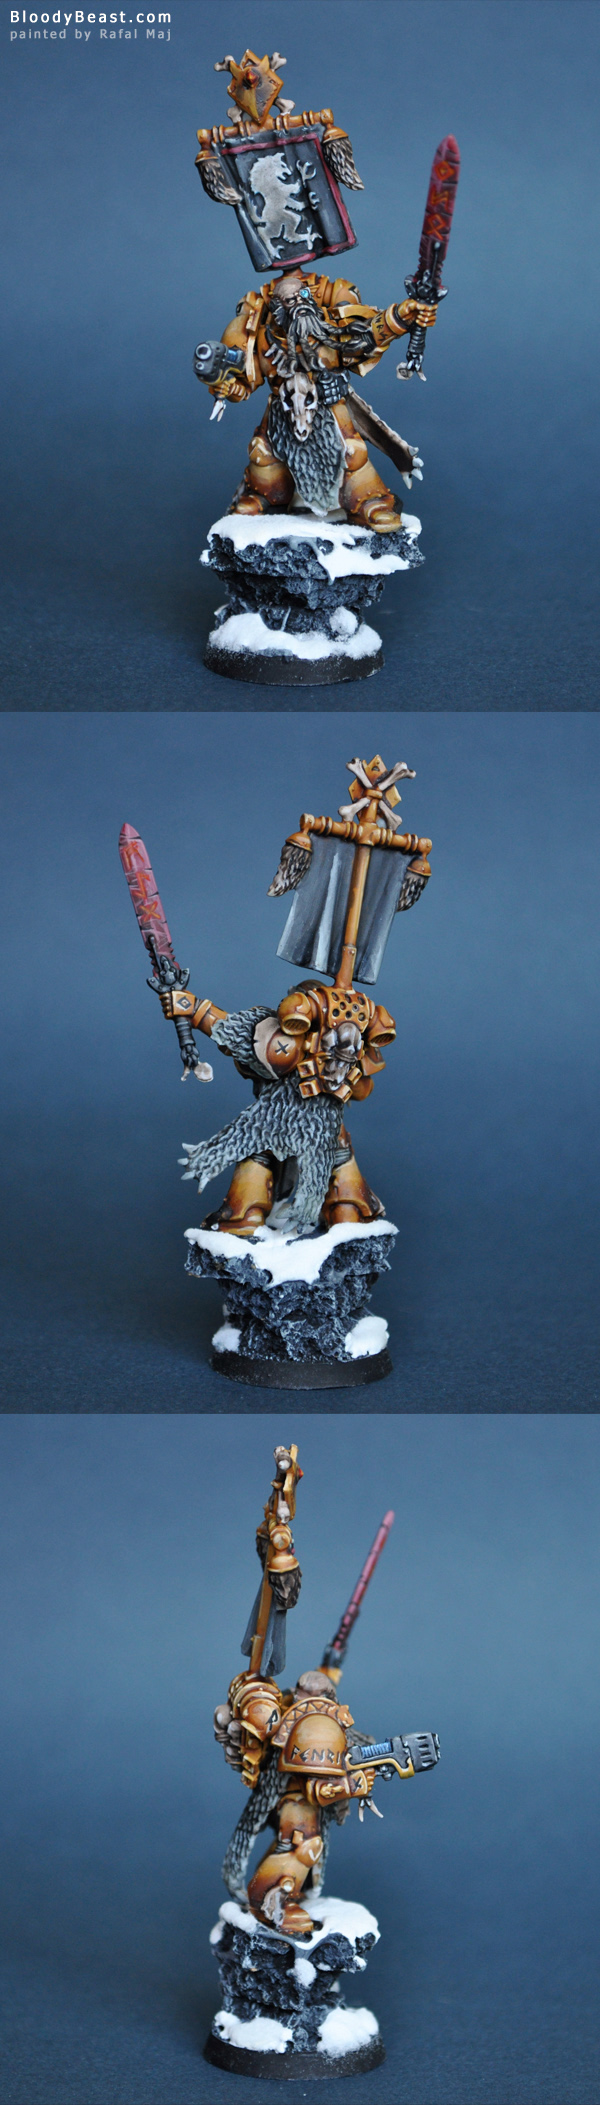 Space Wolf Rune Priest painted by Rafal Maj (BloodyBeast.com)